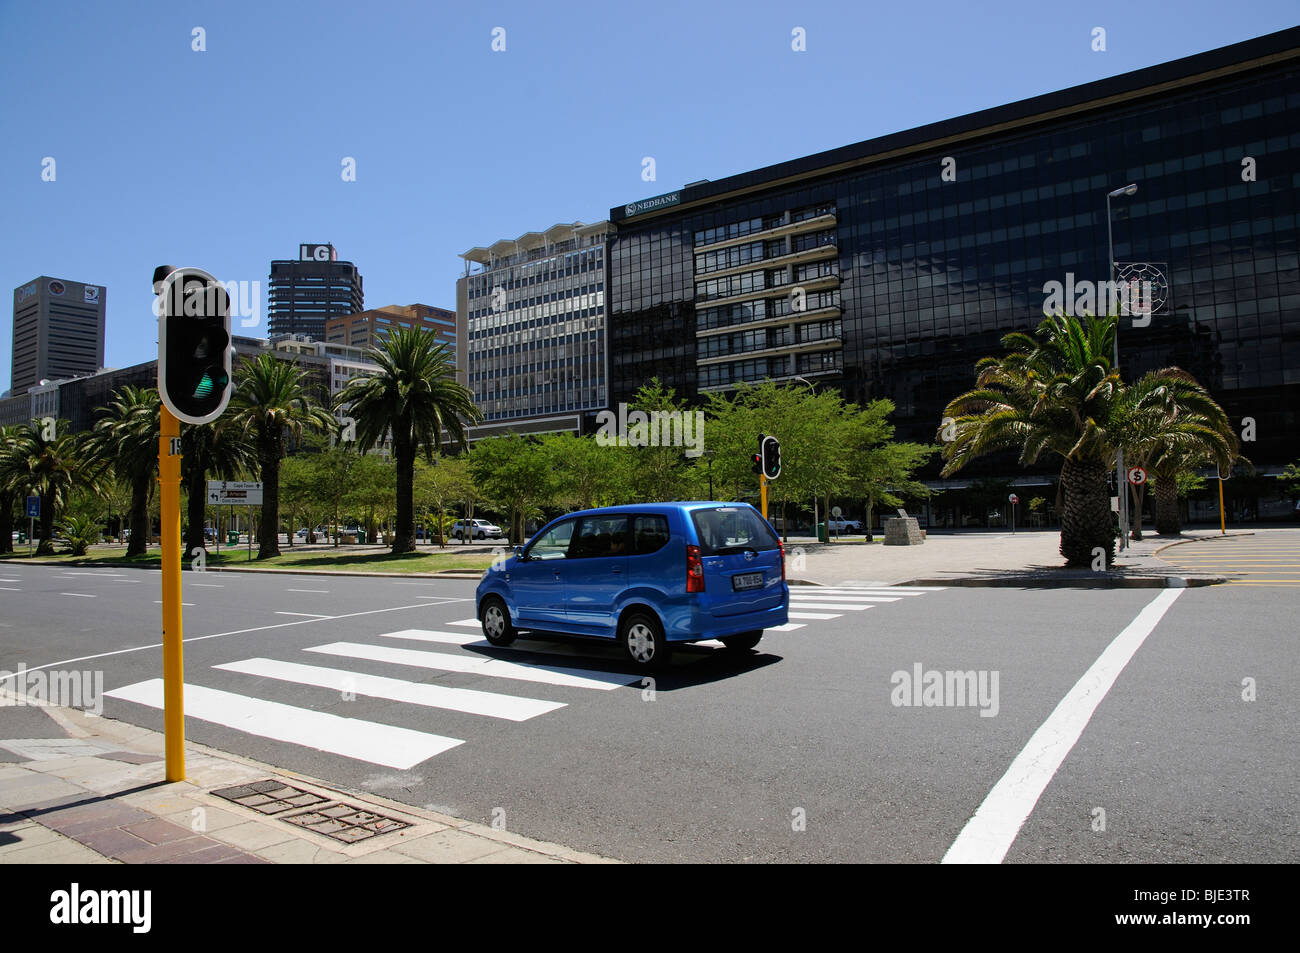 Nedbank and other office premises along Adderley Street in Cape Town's city centre. South Africa - Stock Image